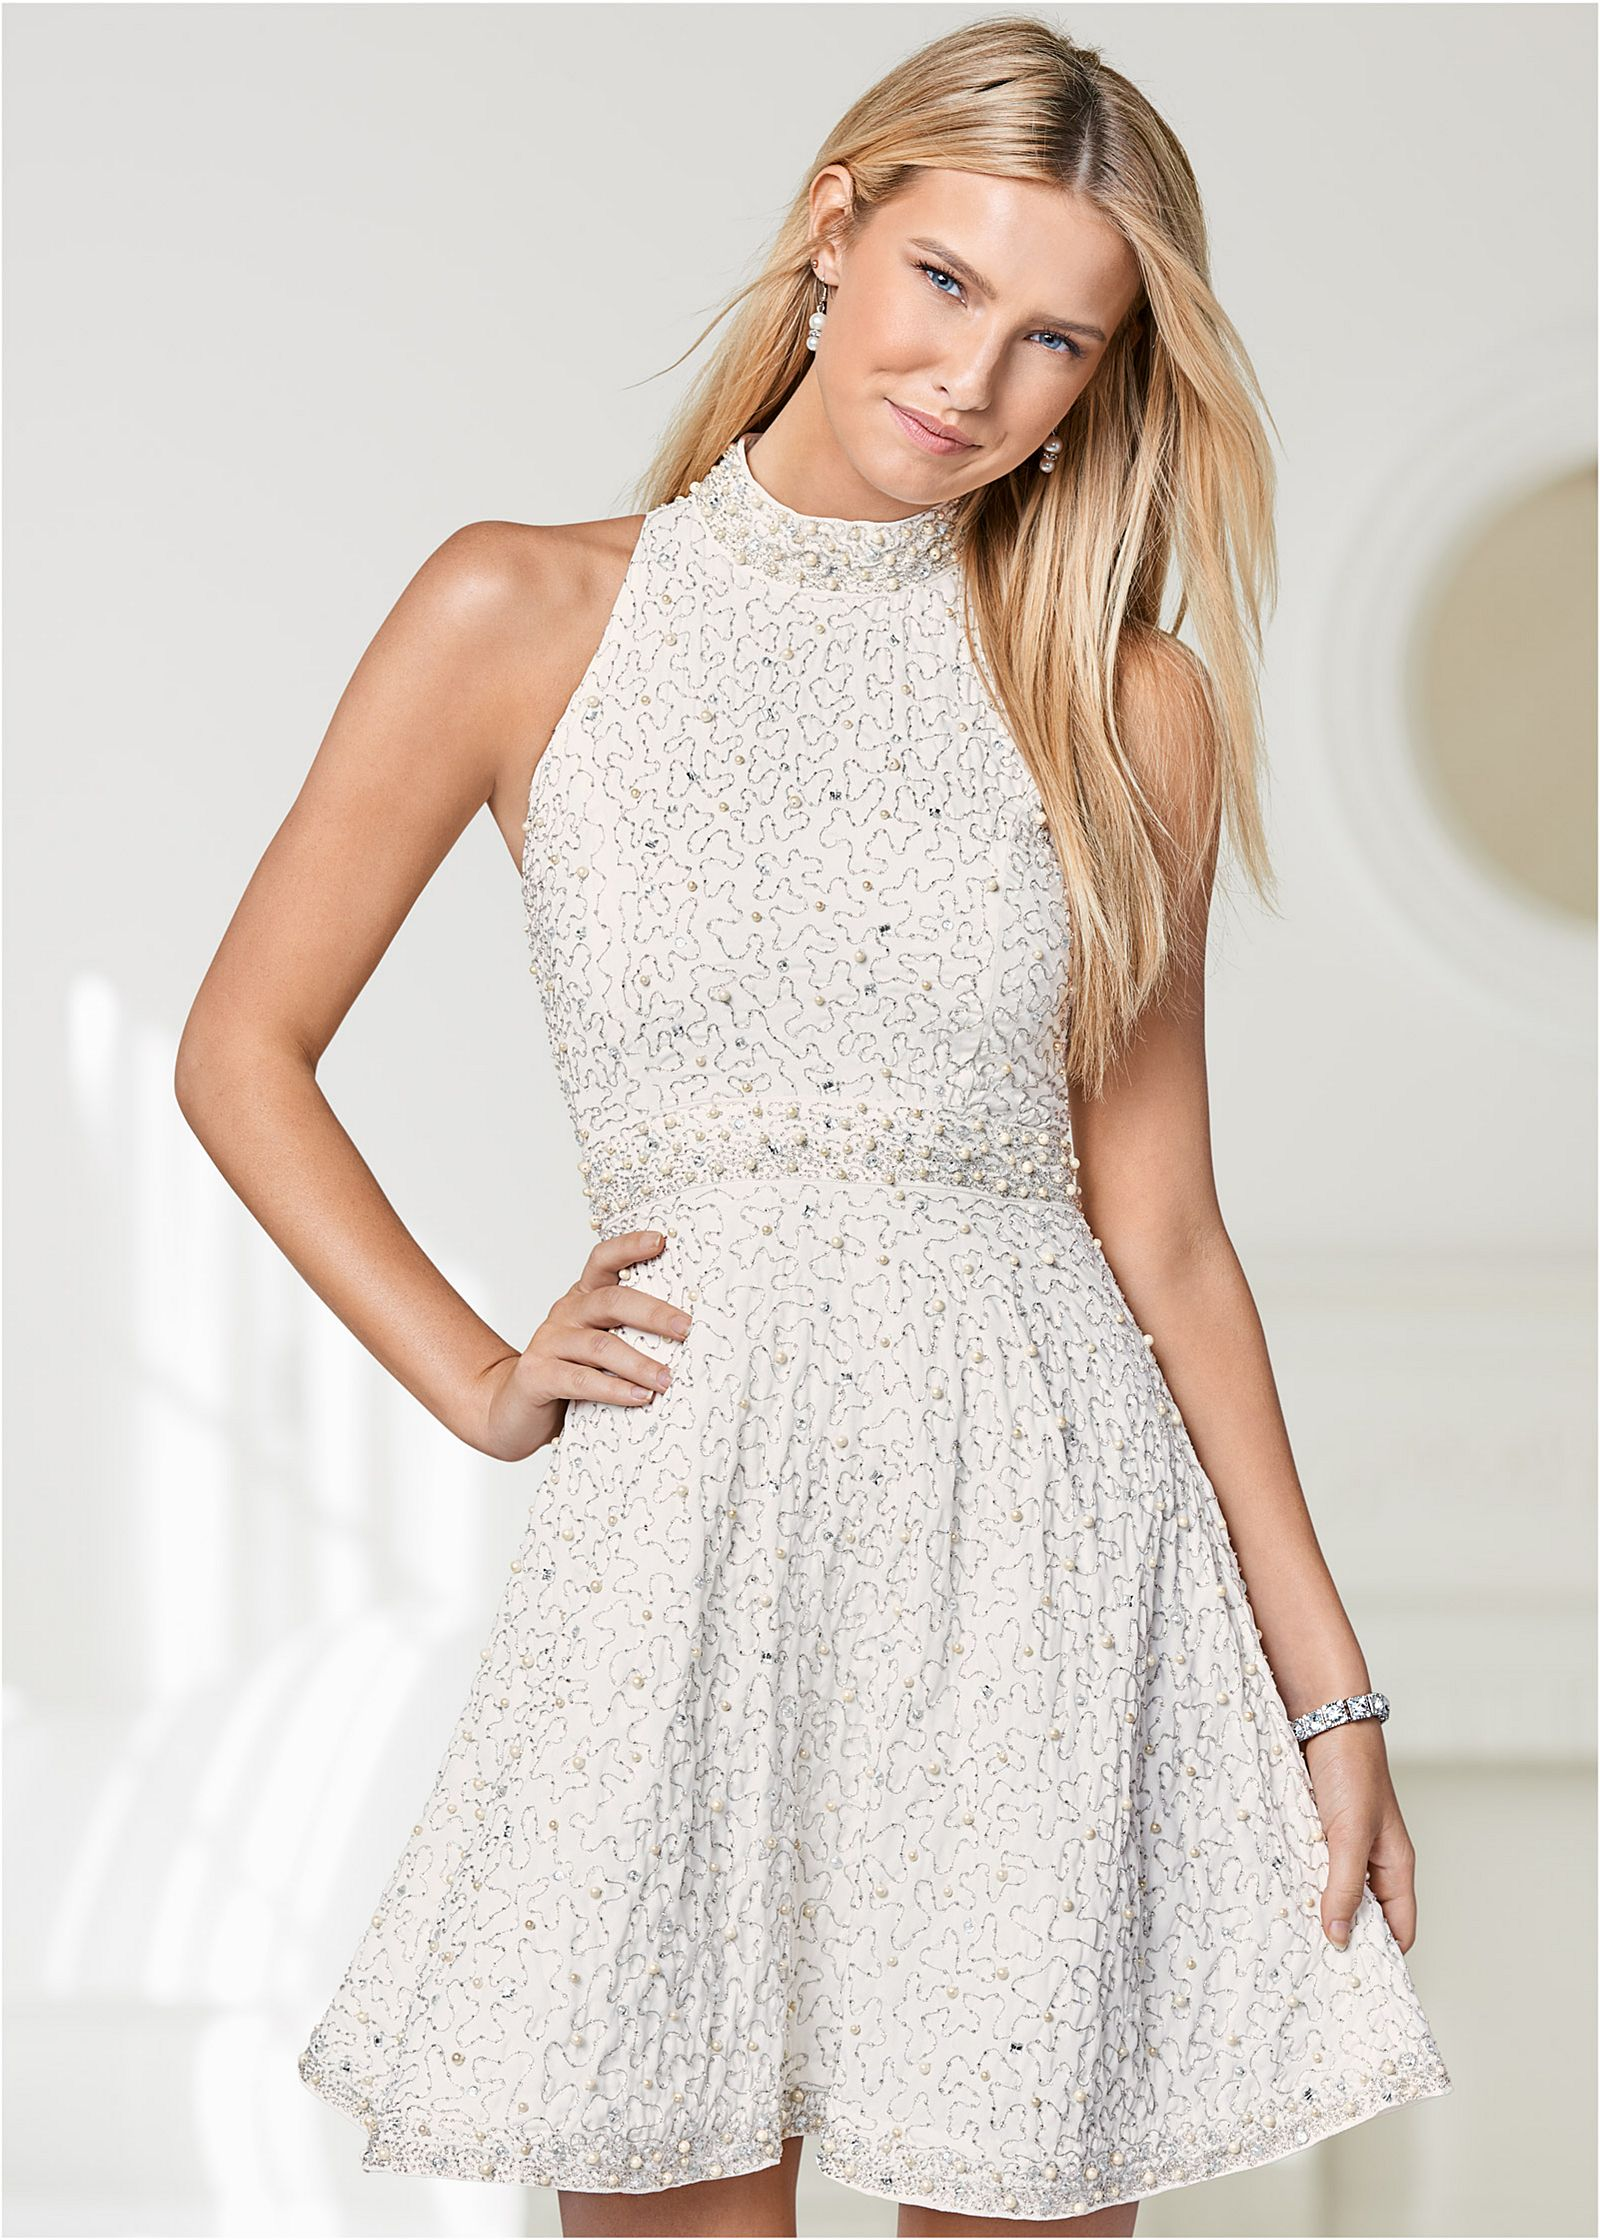 All Over Beaded Dress In Champagne VENUS